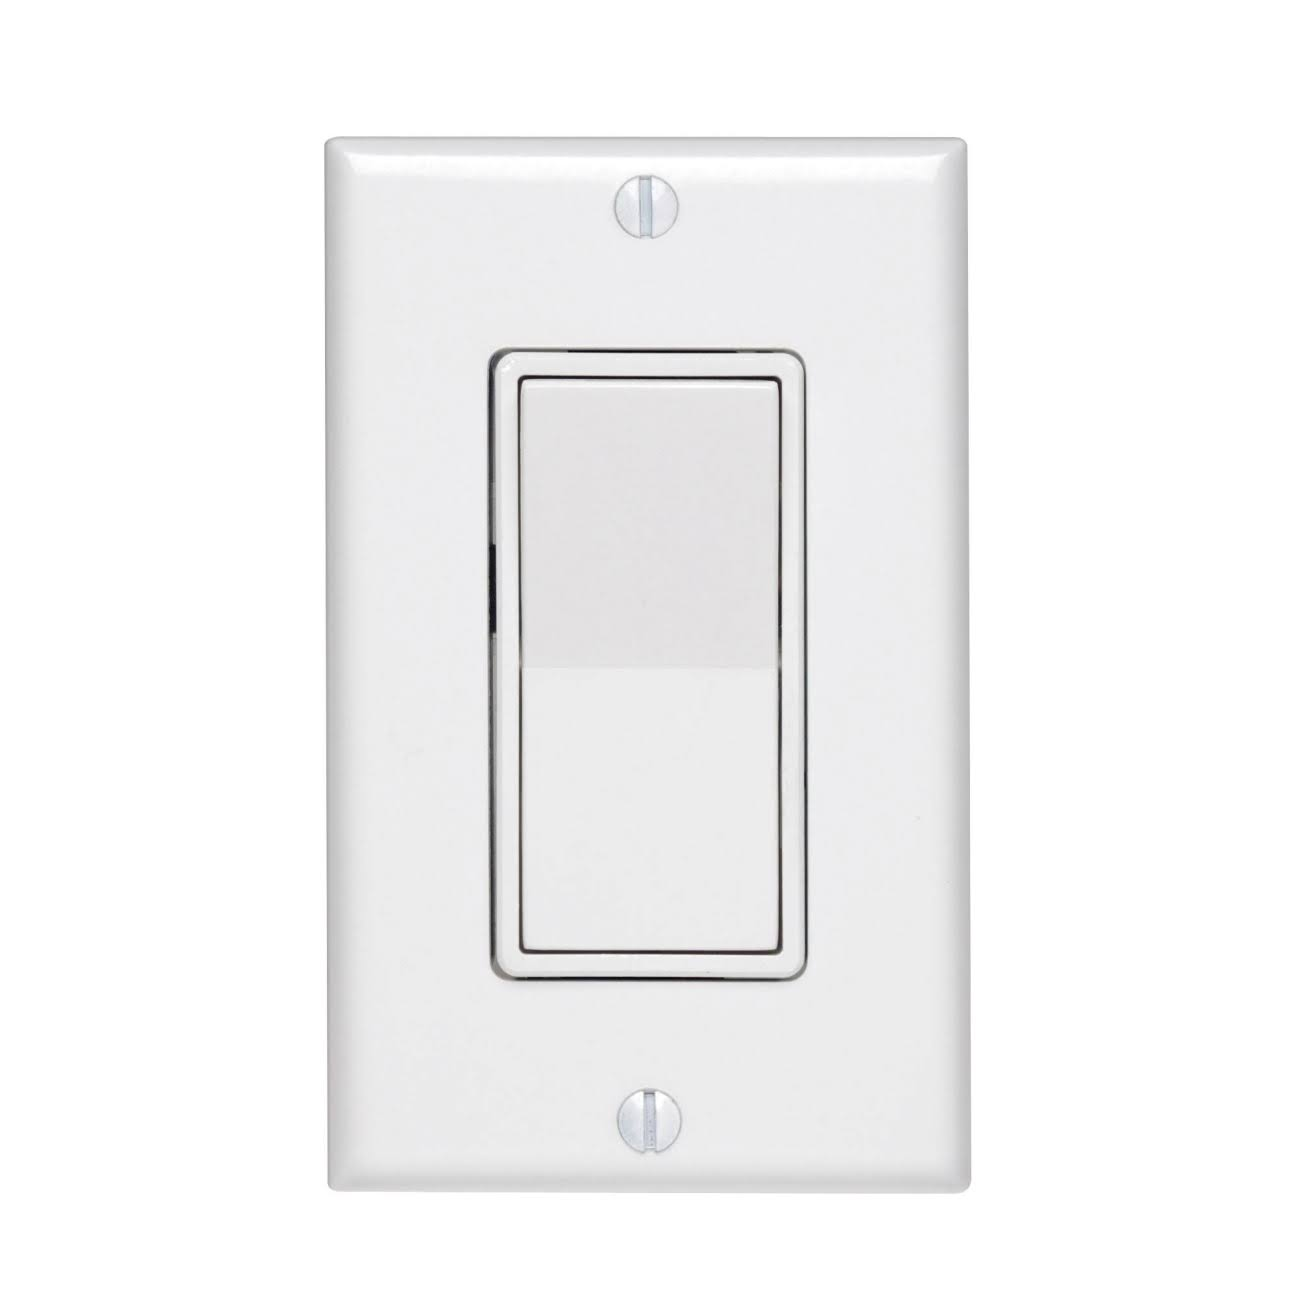 Leviton Rocker Switch - with Wall Plate, Single Pole, 3 Way, 15 Amp